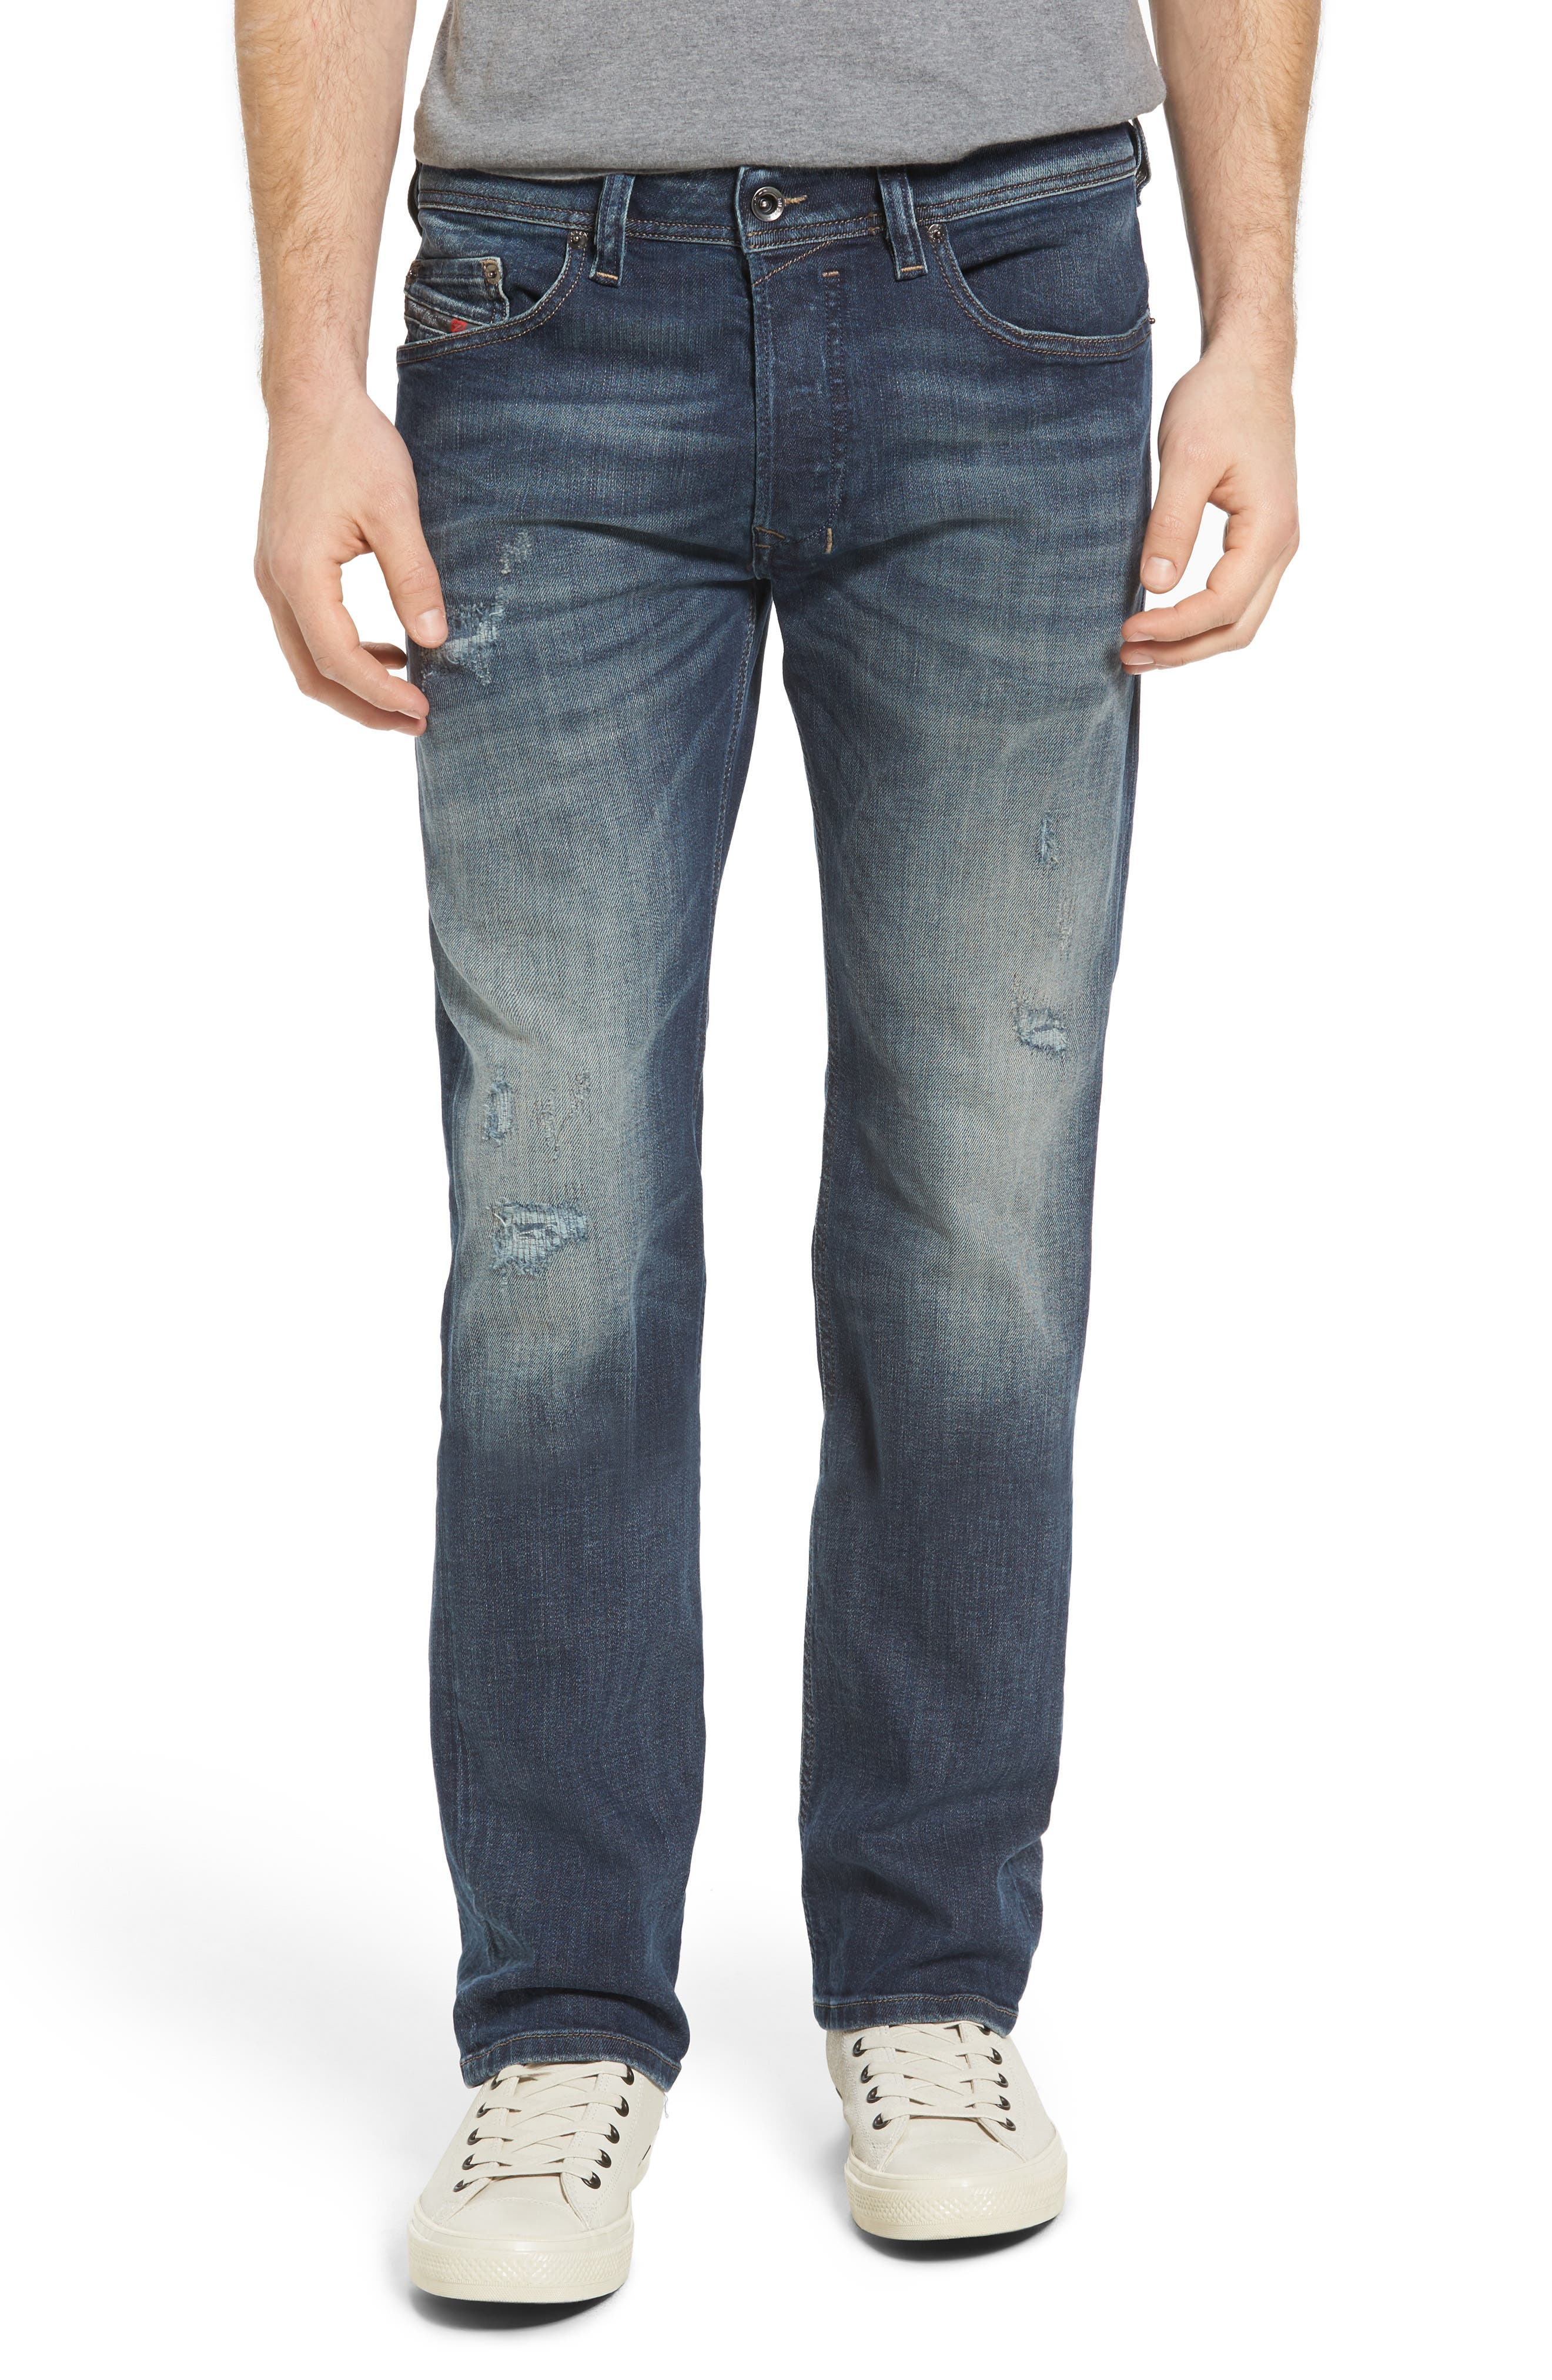 Safado Slim Straight Fit Jeans,                         Main,                         color, 400